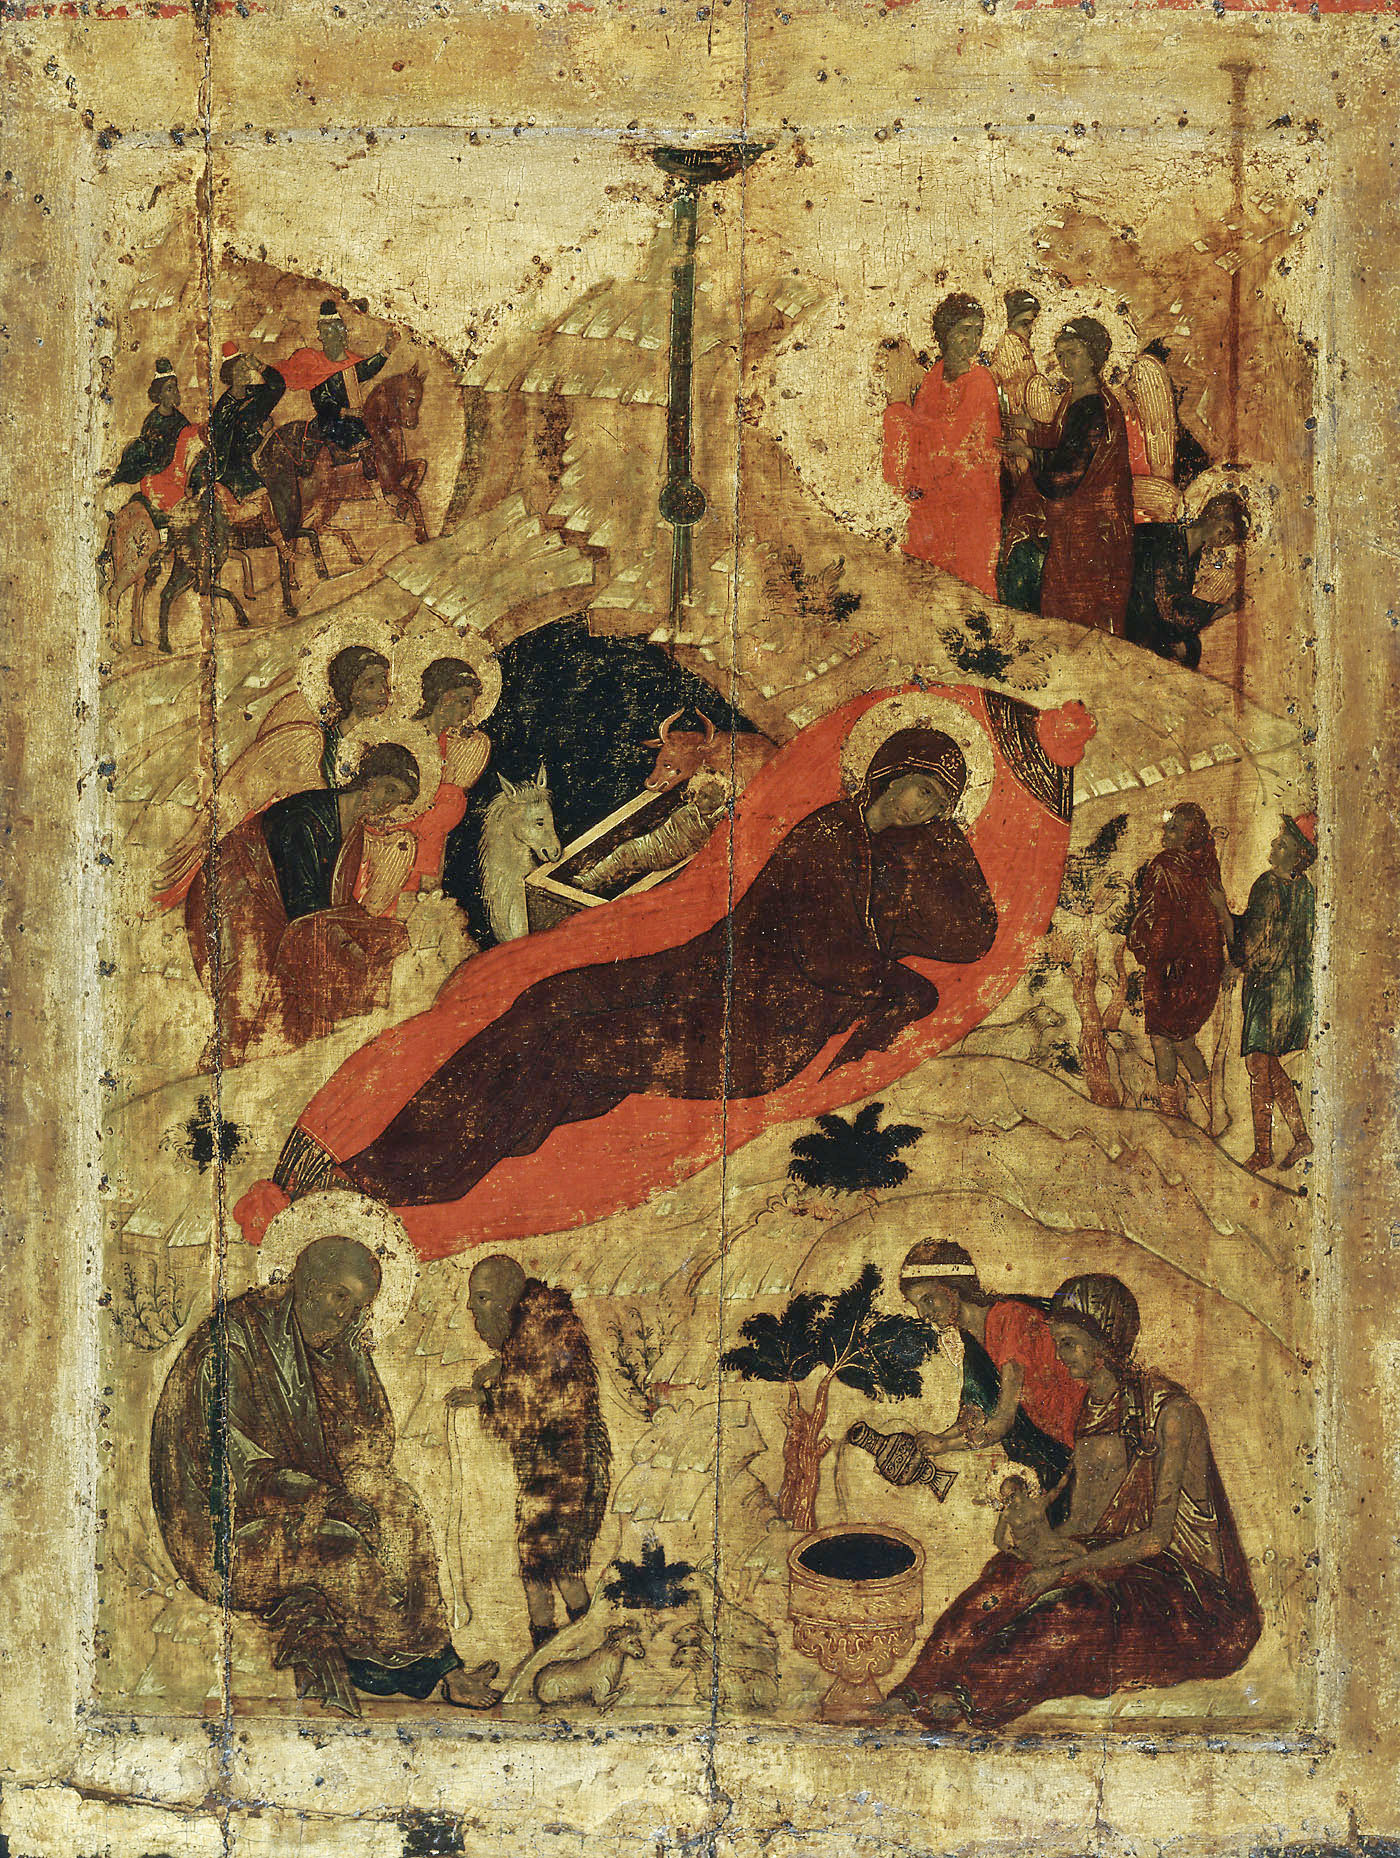 Eastern Orthodox icon of the birth of Christ by St. Andrei Rublev, 15th century. Note that the shepherd speaking with St. Joseph in the lower left is shown in profile, a pose reserved only for this shepherd, the Devil,  and for Judas Iscariot and which indicates their interior wickedness and efforts to hide themselves from God. Also, the cave in which Christ is born is painted with the same absolute black pigment -- unmixed with any other dark colors, which is more usual -- as is the tomb of Christ or the abyss of Hell, into which the Divine Presence has entered.